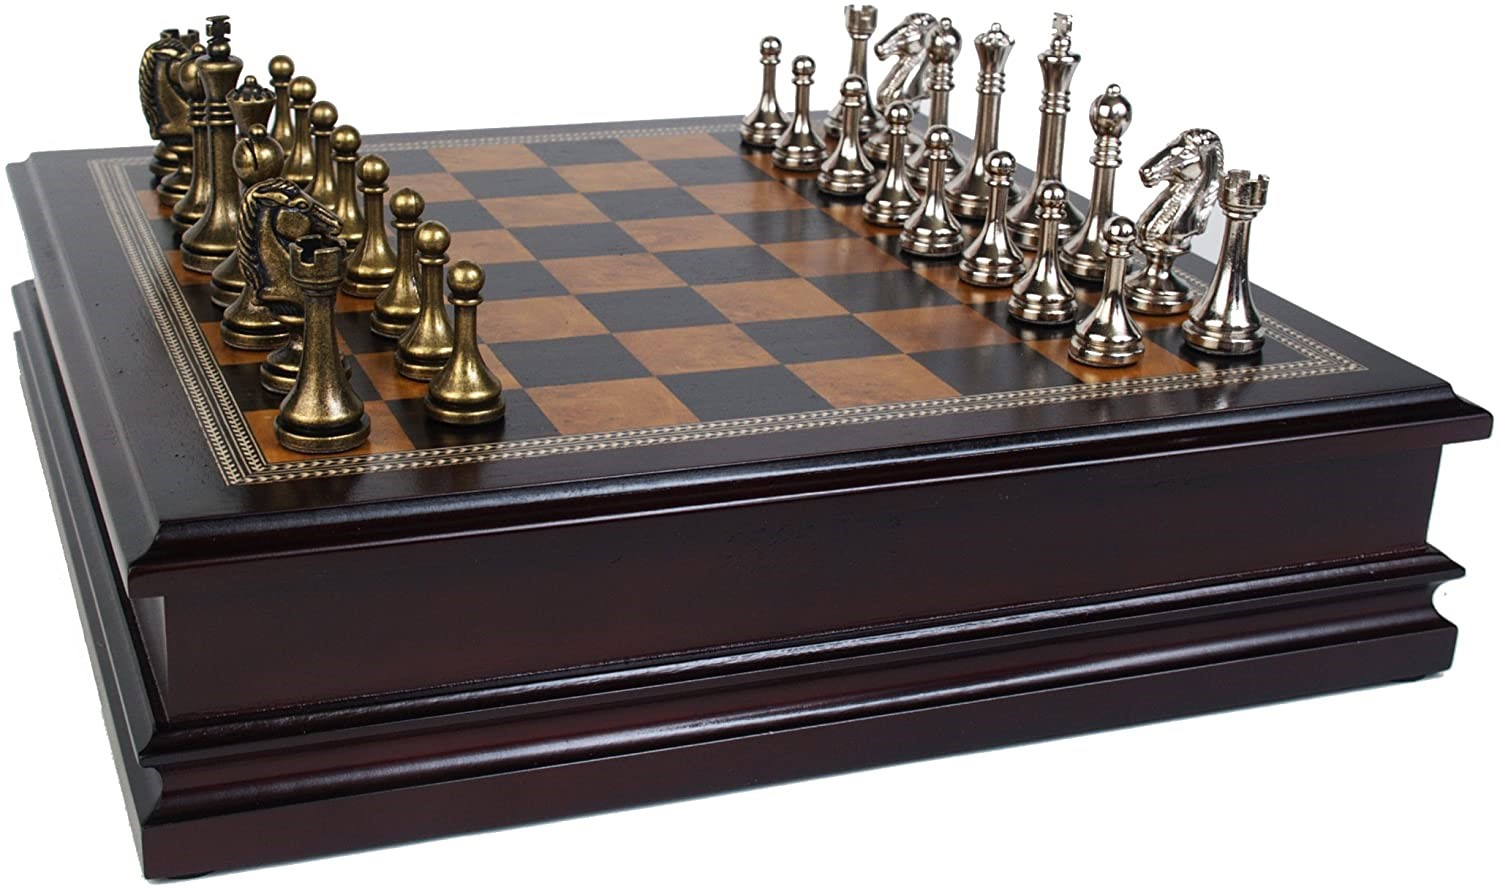 Classic Game Collection Wooden & Metal Chess Set